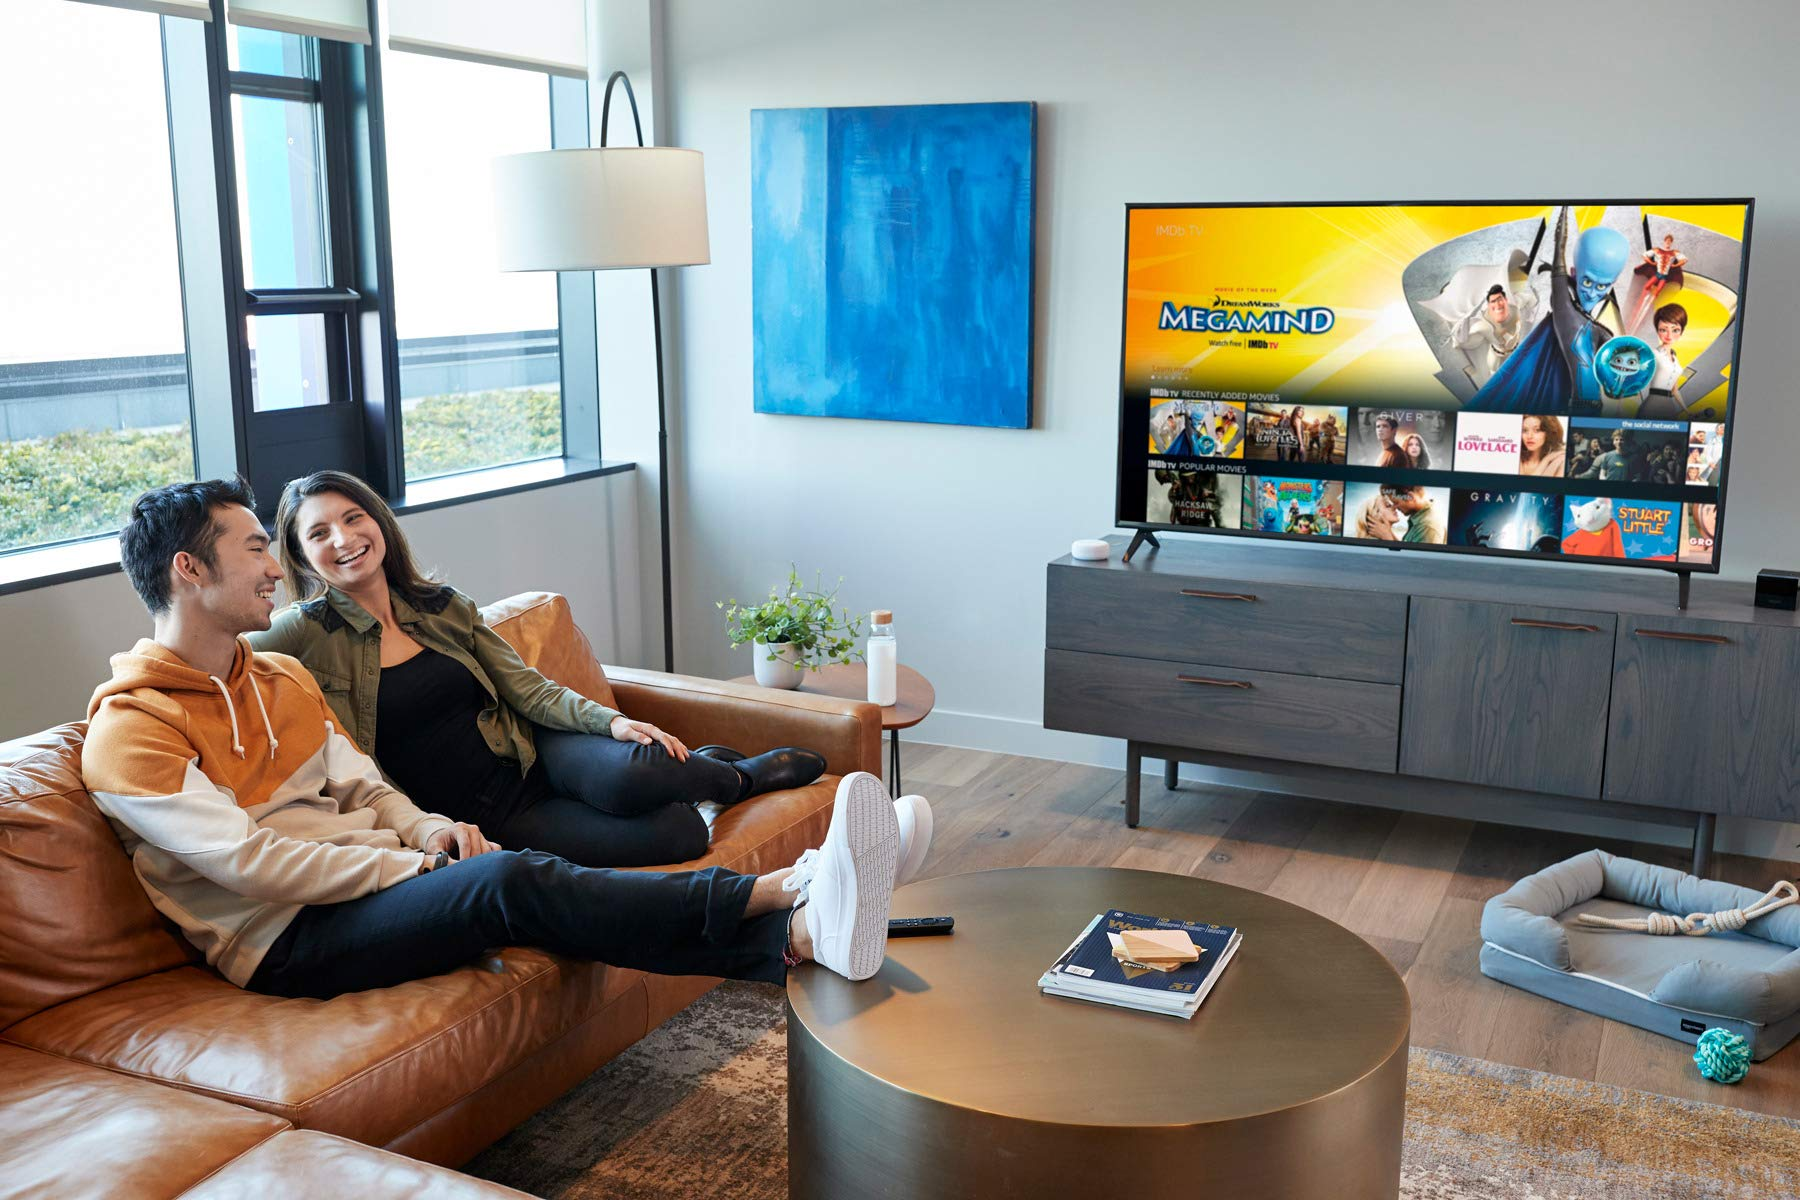 A young man and a young woman laugh together while sitting on a couch in a living room with a TV in the background, which shows a movies selection screen.